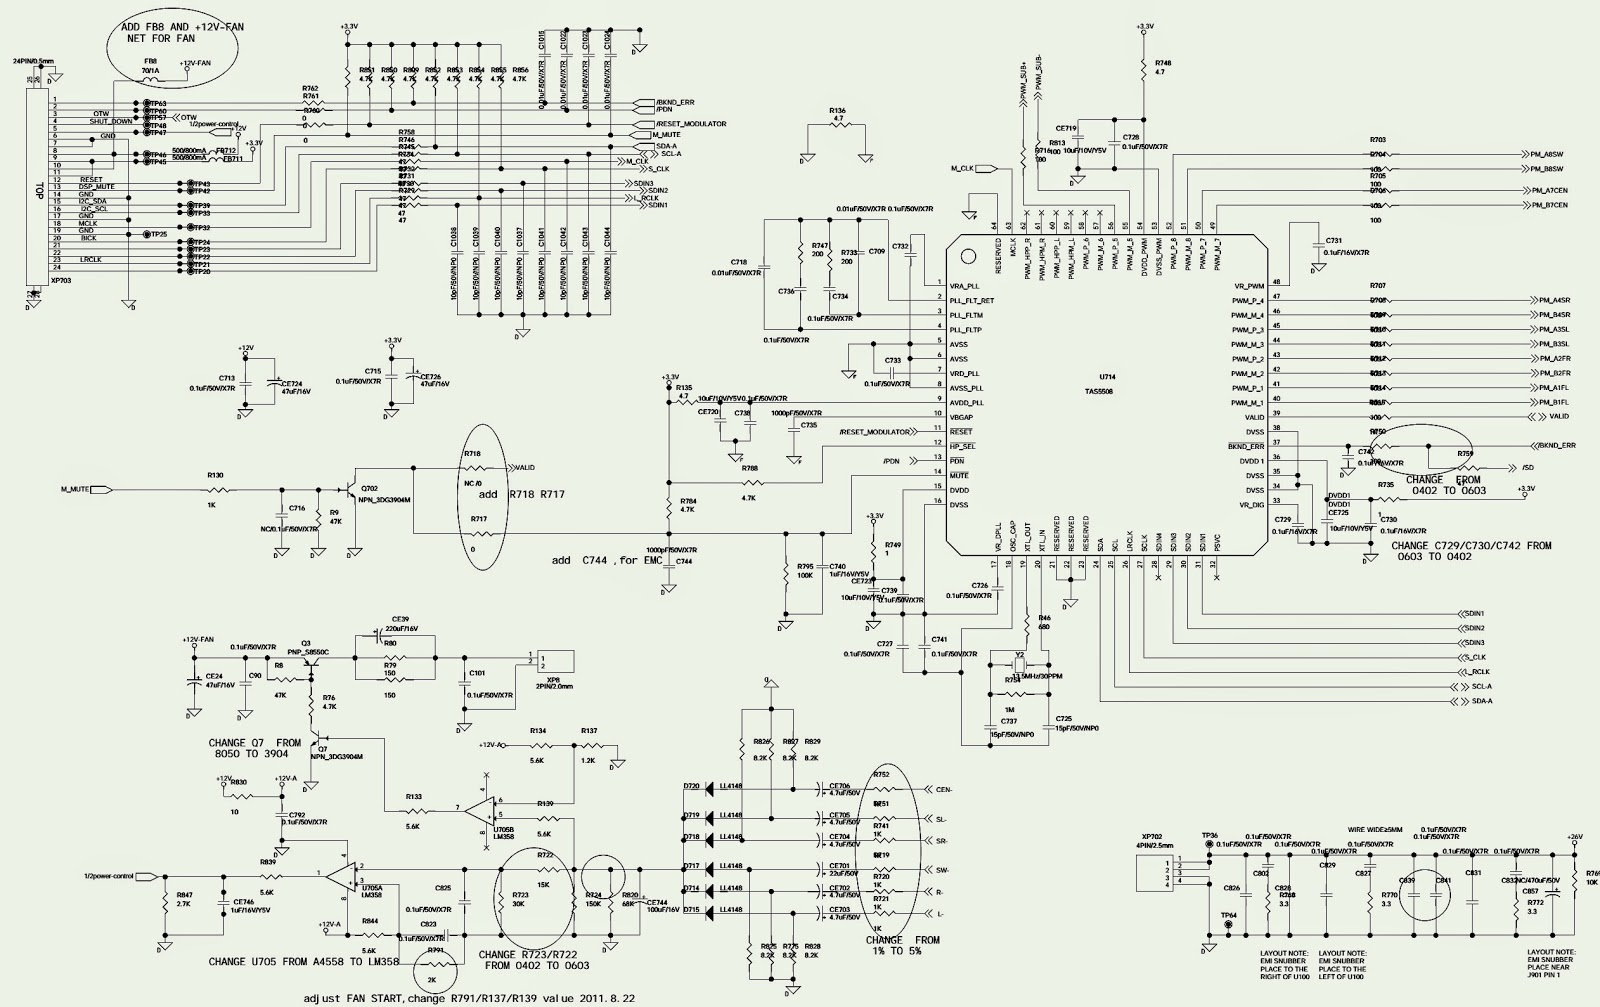 Network Schematic Jbl L19